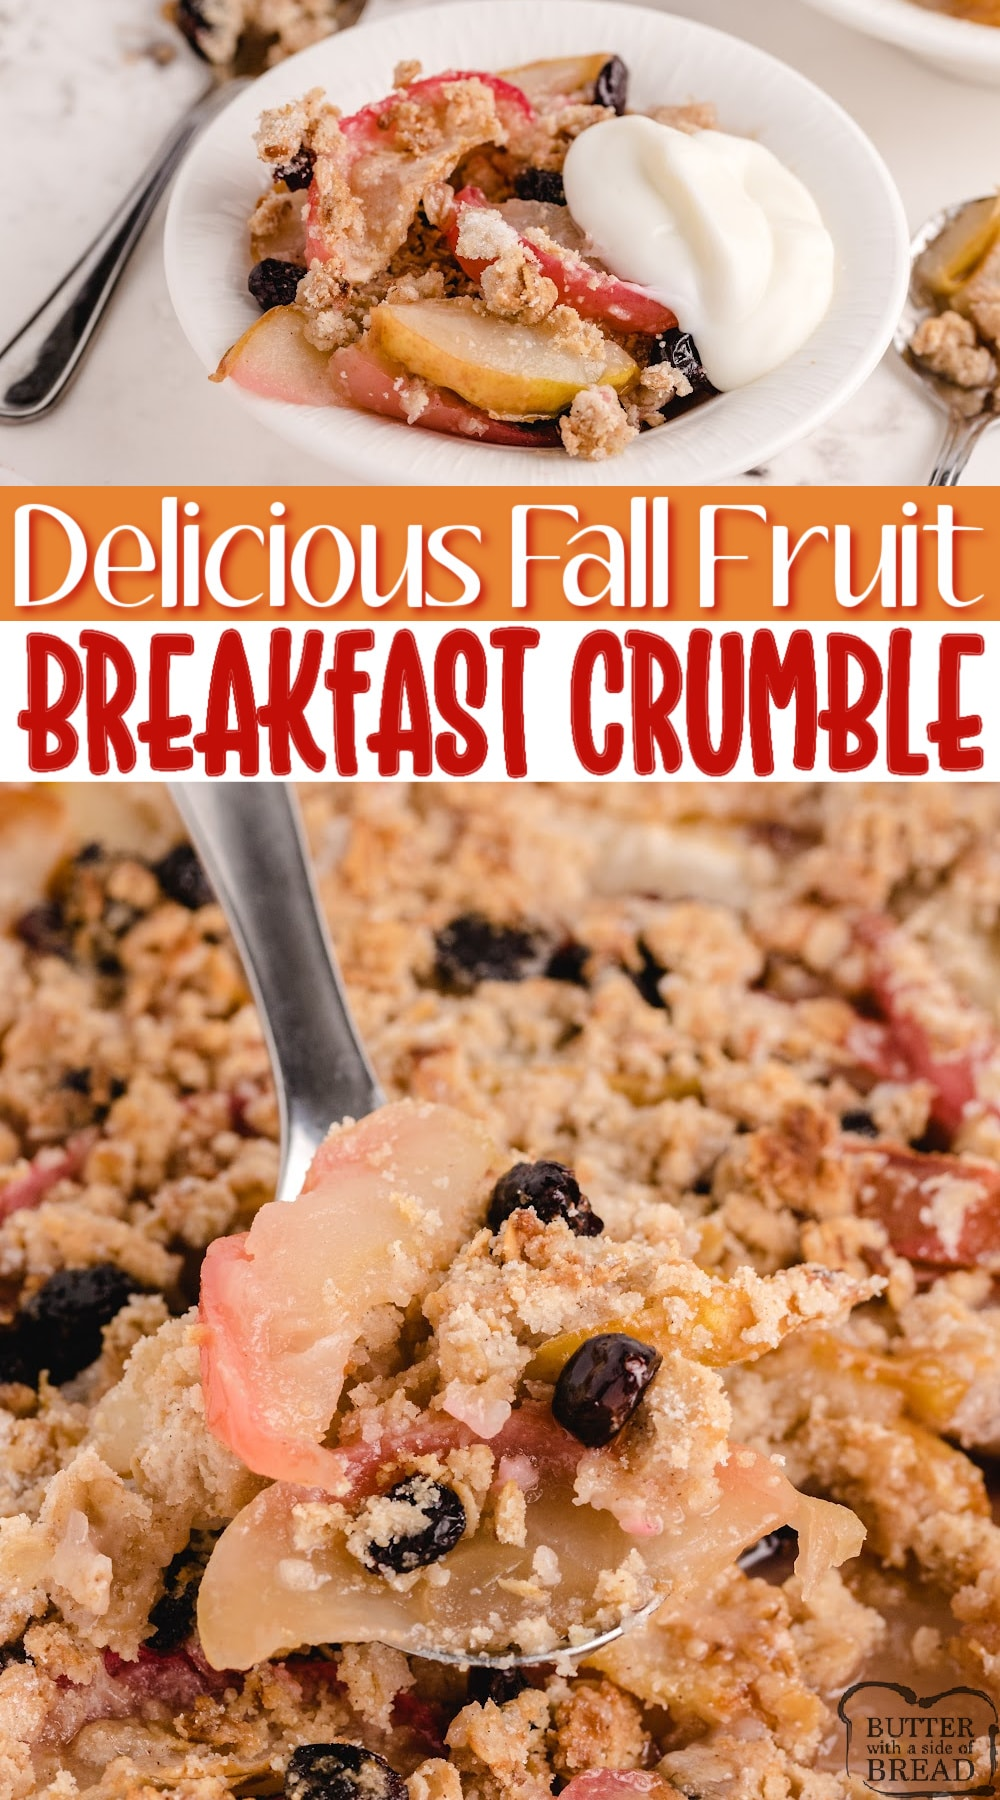 Fall Fruit Breakfast Crumble made with sliced apples, pears and dried cranberries with a delicious cinnamon oat topping! Add some yogurt for a delicious breakfast, or add ice cream and serve as a dessert!